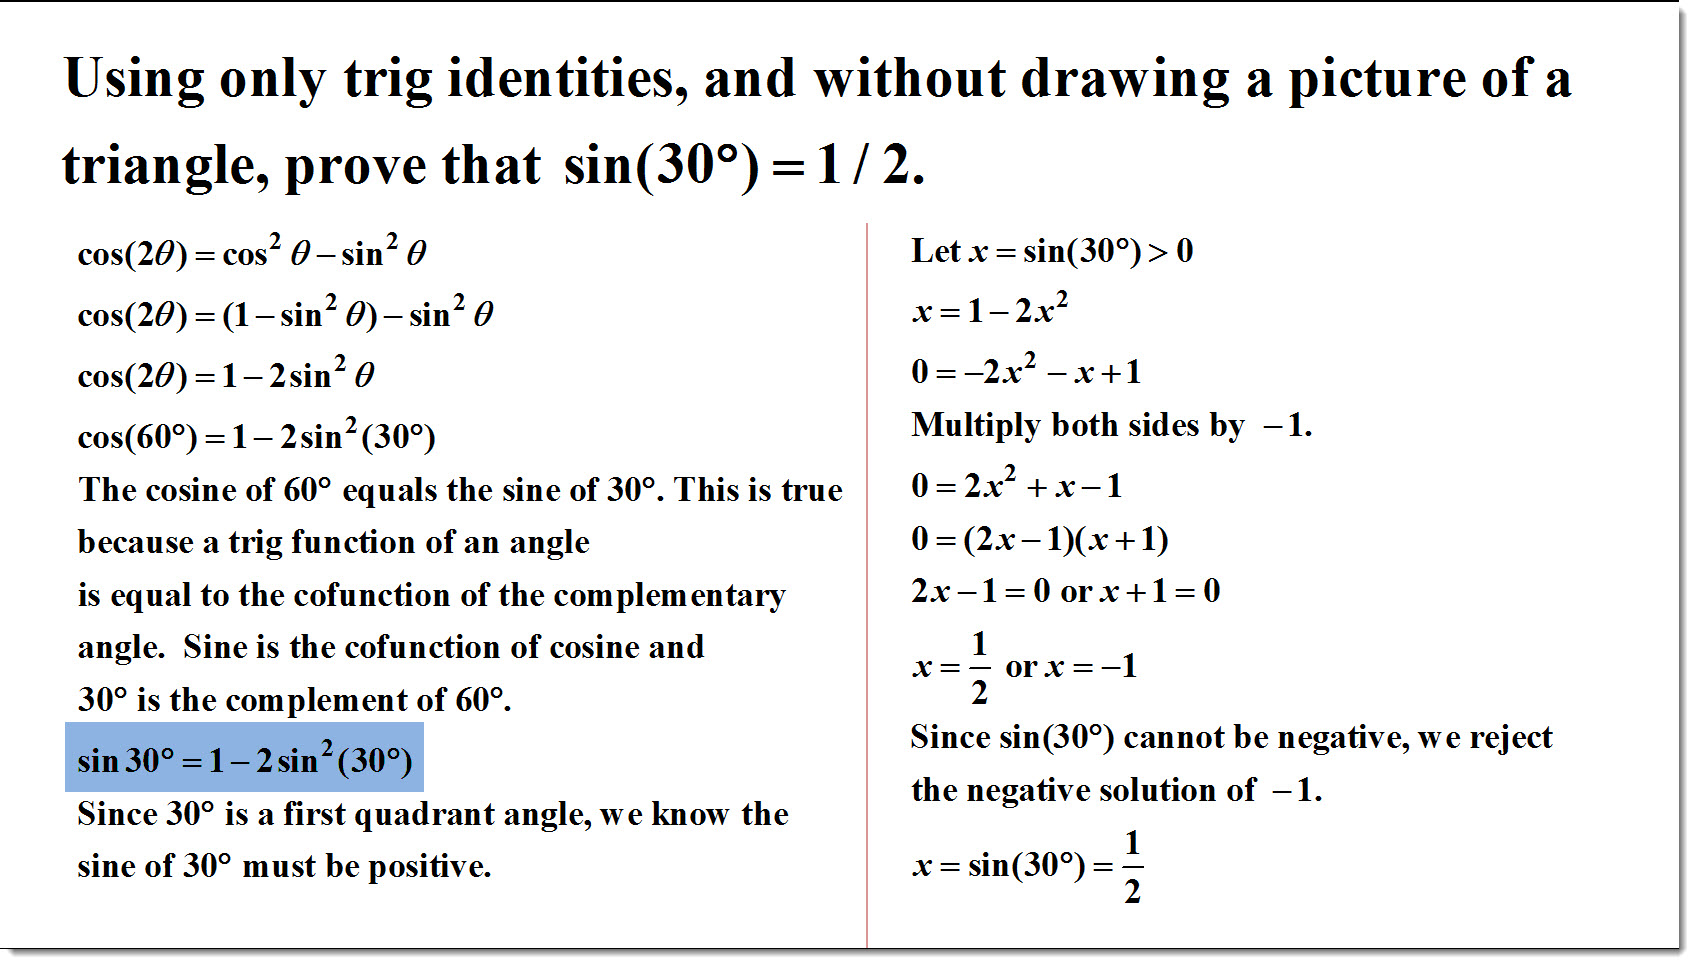 Using Only Trig Identities, and Without Drawing a Picture of a ...